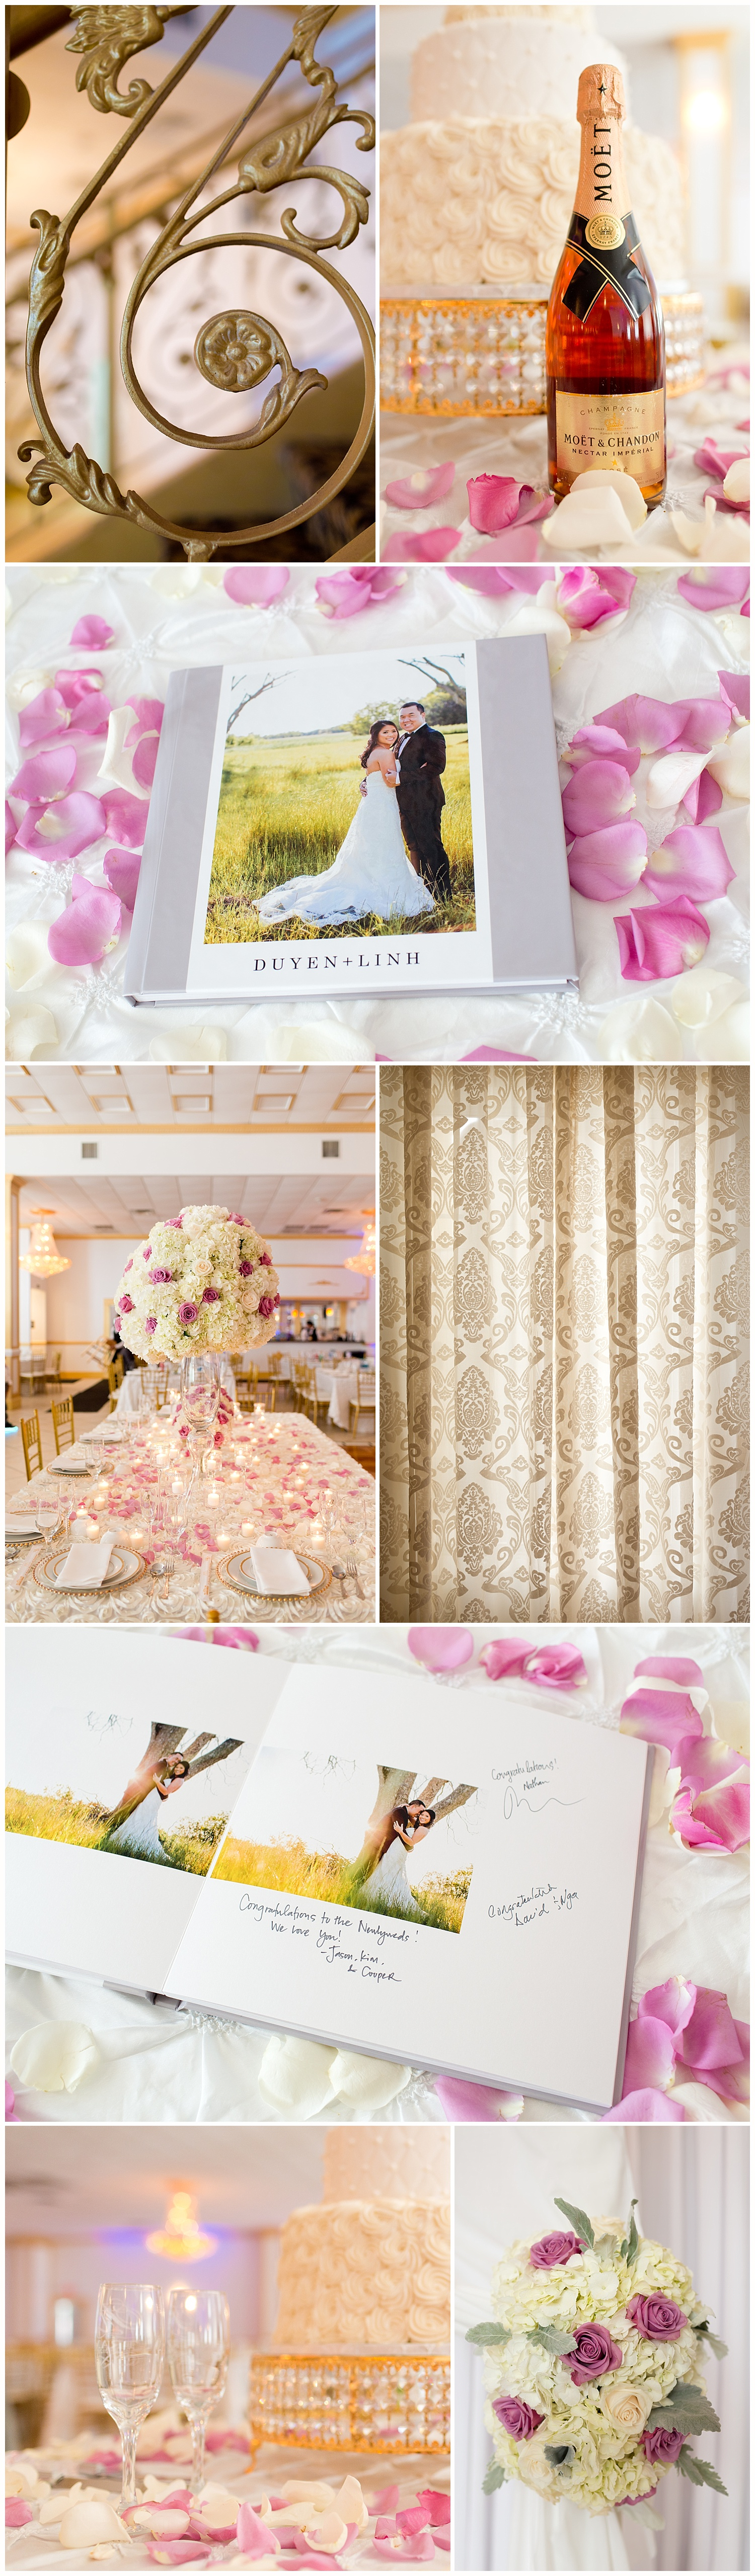 pink and white wedding reception details - champagne, rose petals, guest book